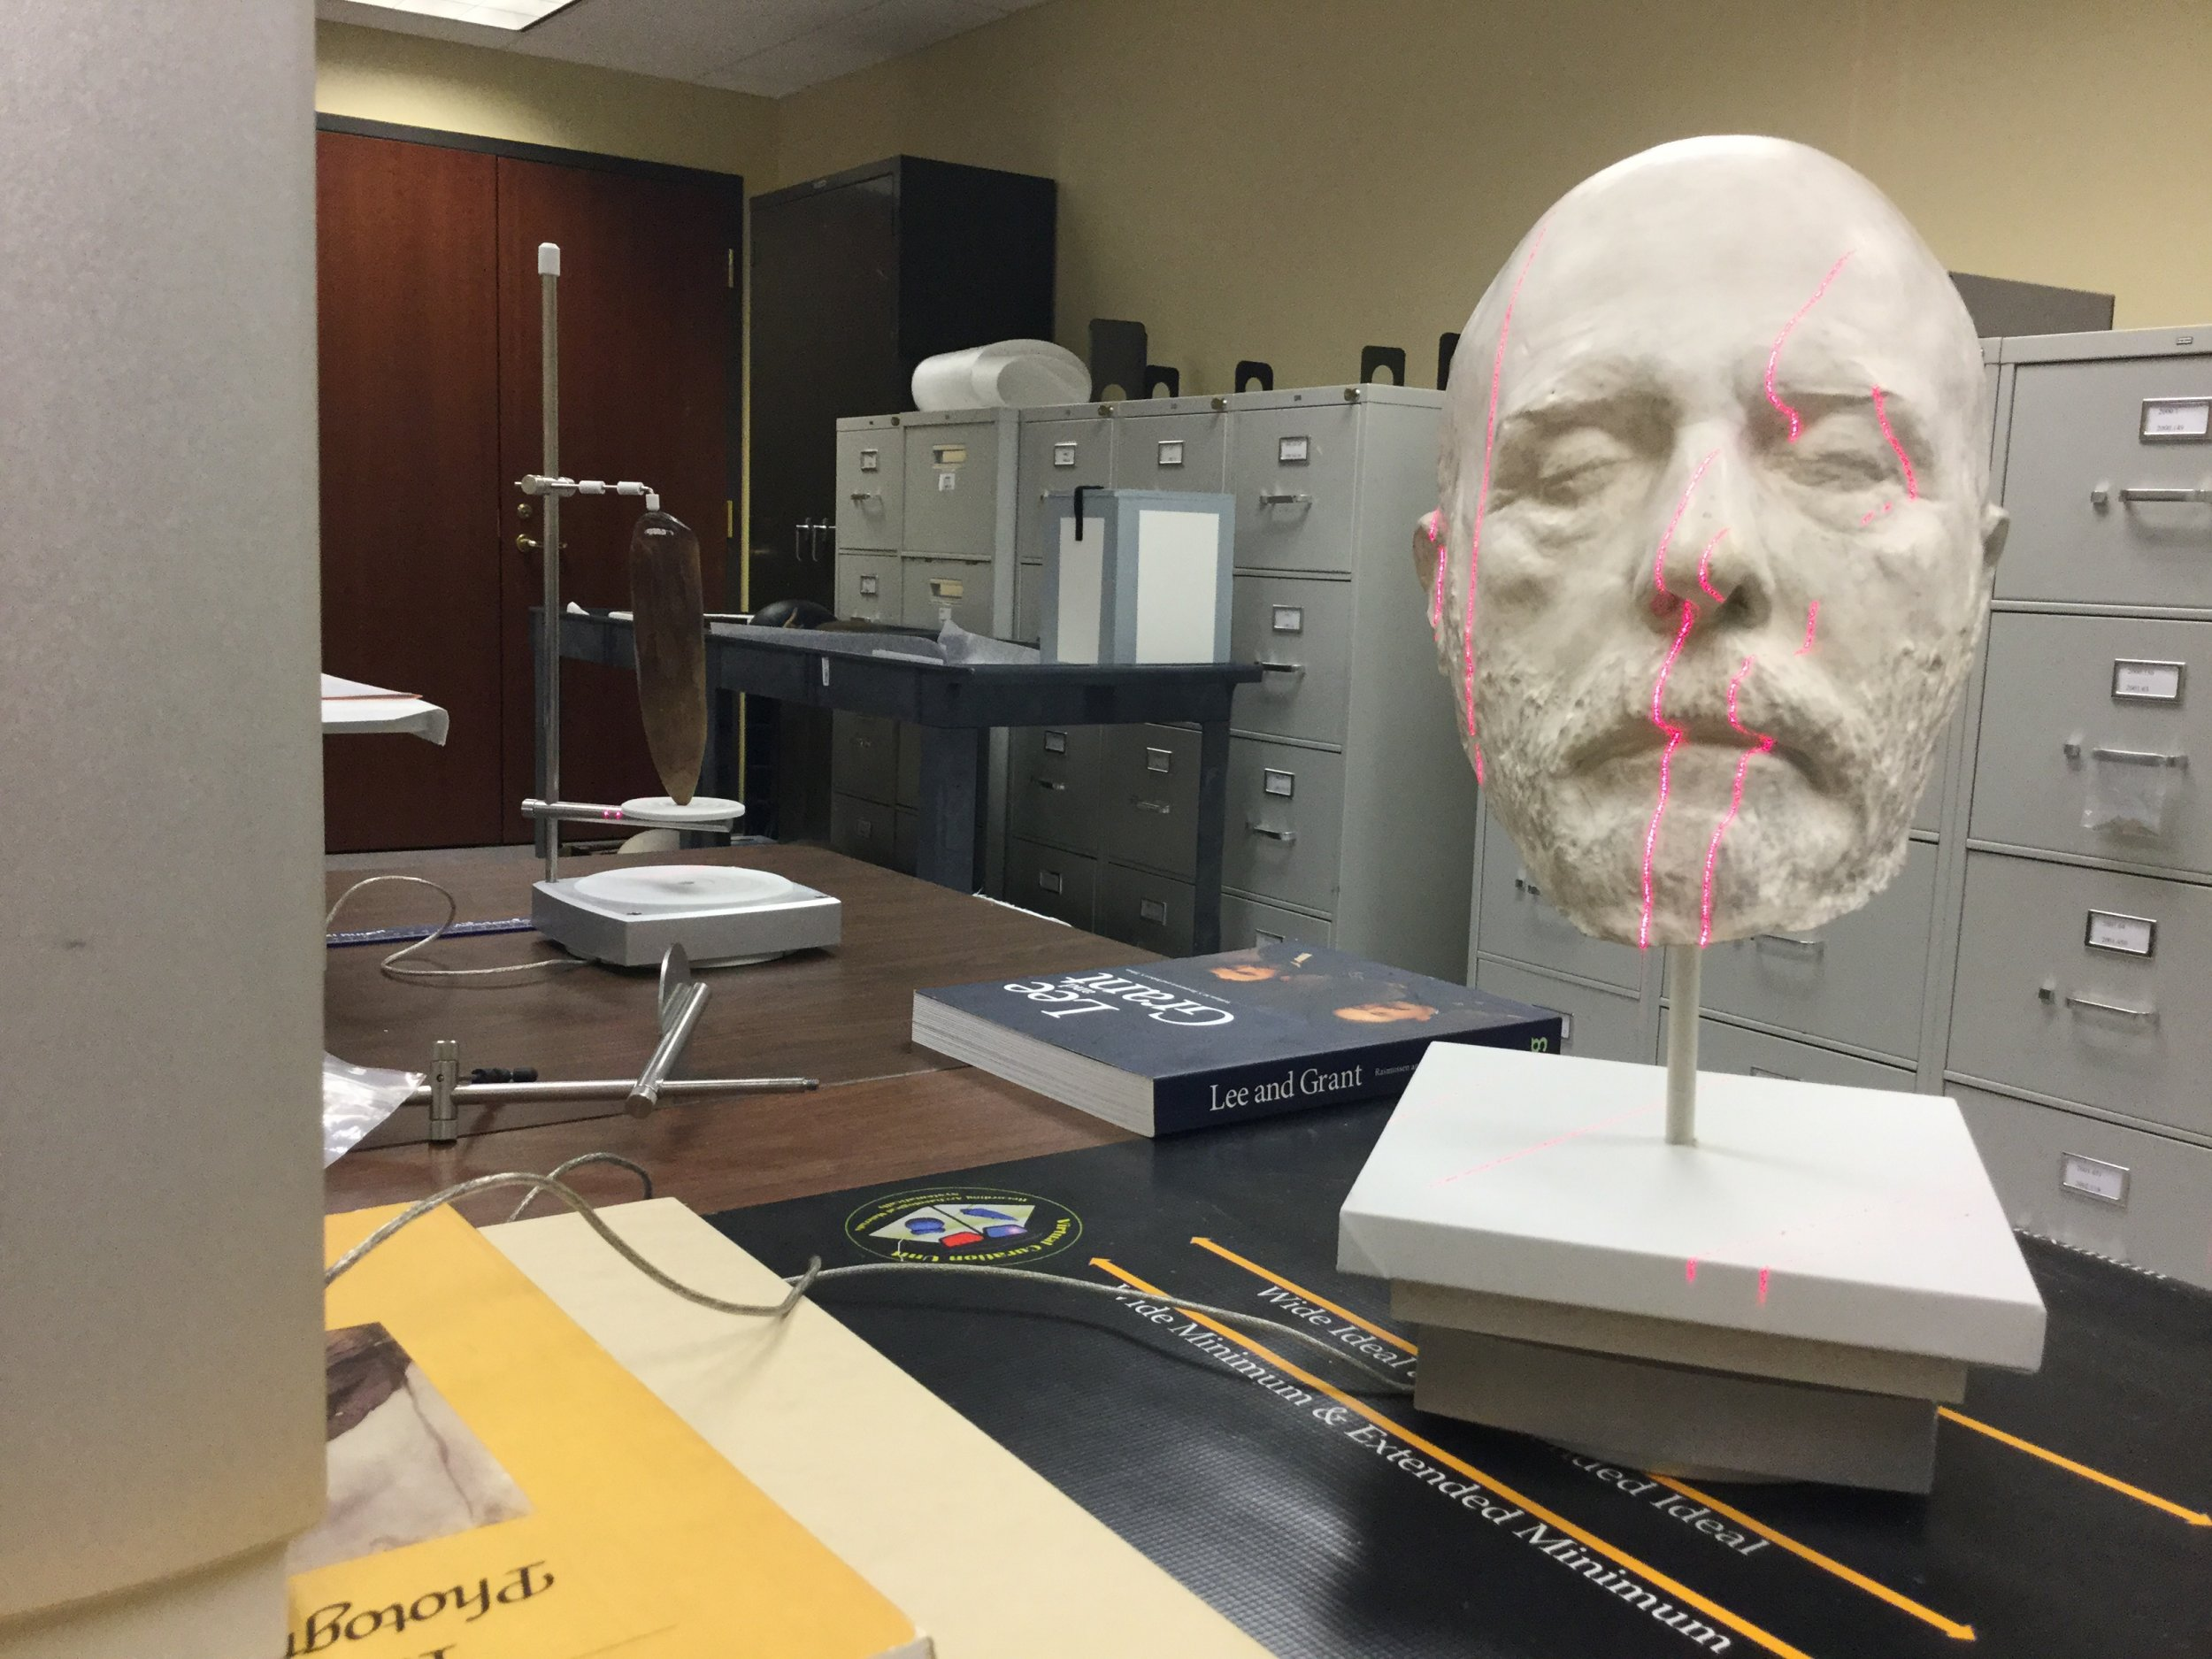 3D_scanning_Robert_E_Lee_Lifemask